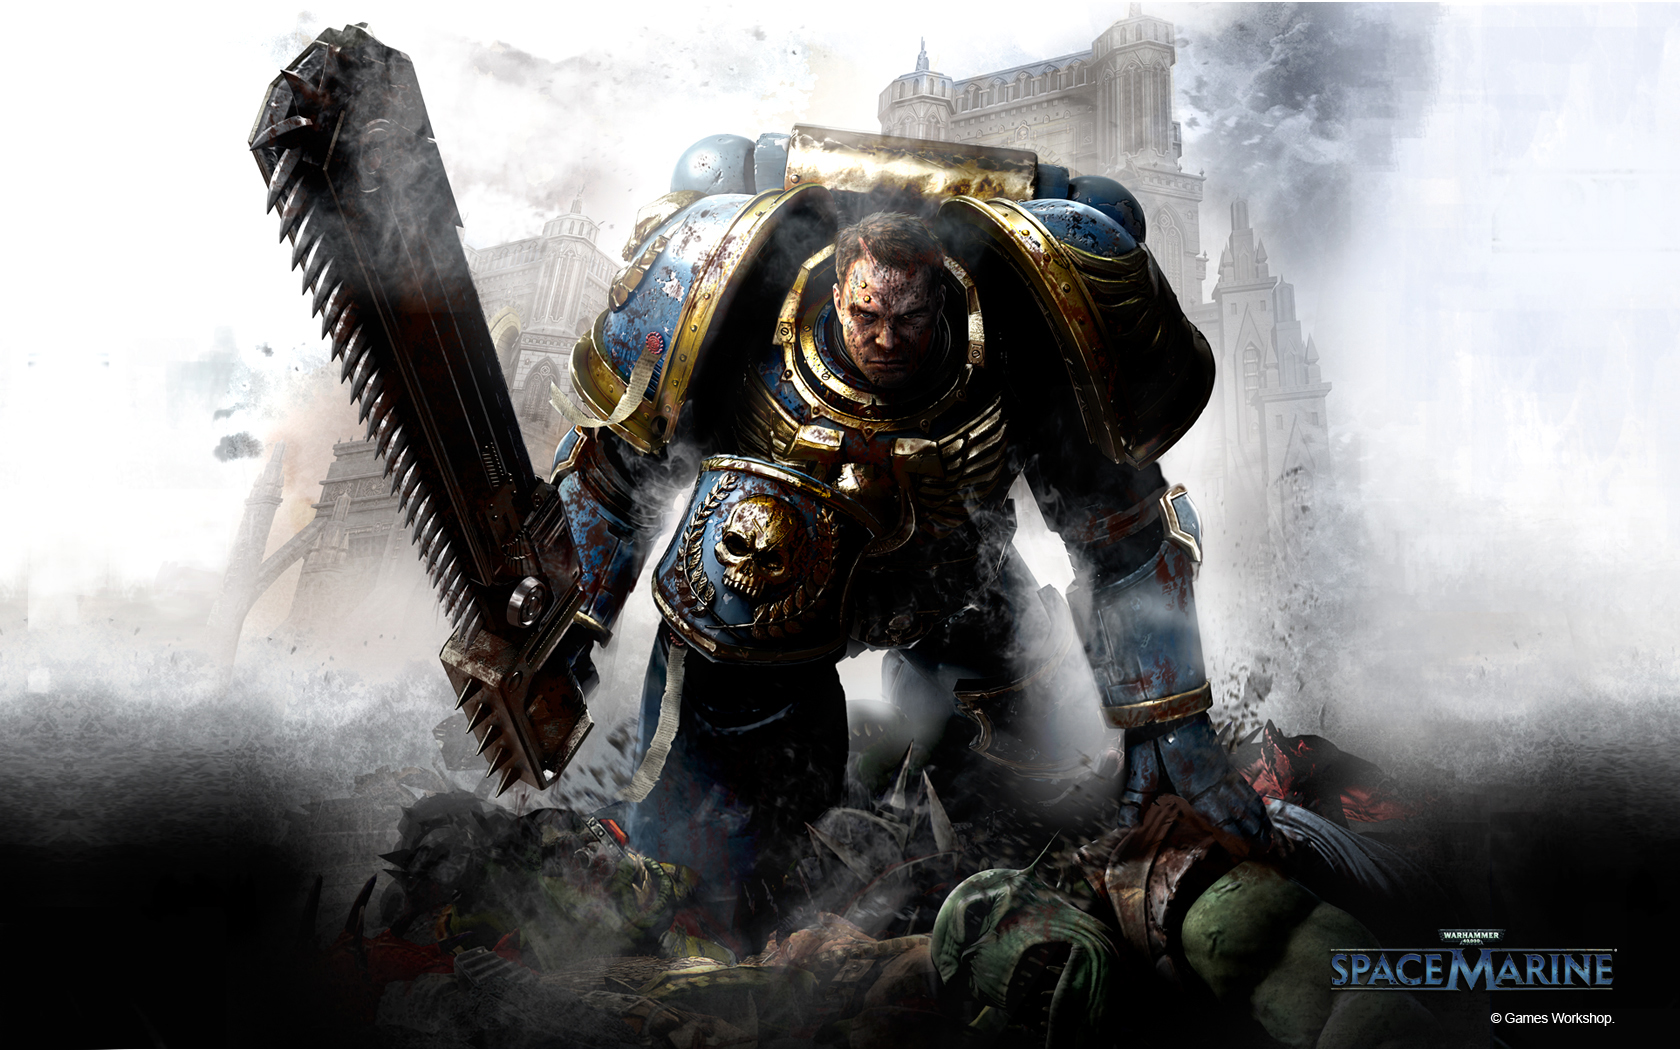 Pics For gt Warhammer 40k Wallpaper Space Marines 1680x1050